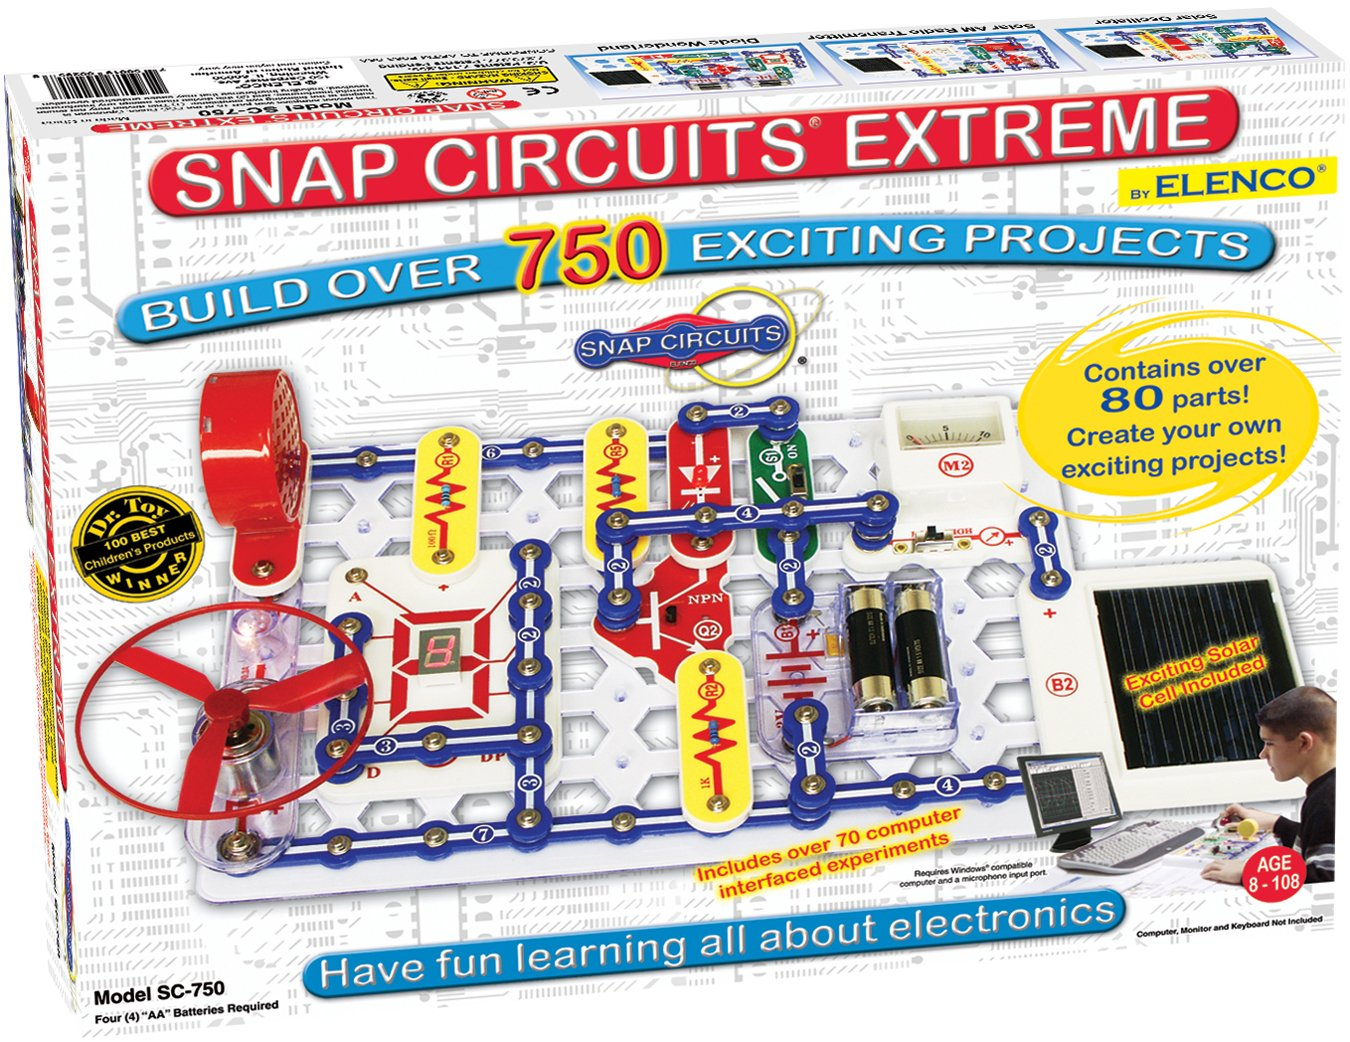 Snap Circuits Extreme SC-750 Electronics Exploration Kit | Over 750 Projects | Full Color Project Manual | 80+ Snap Circuits Parts | STEM Educational Toy For Kids 8+ by Elenco